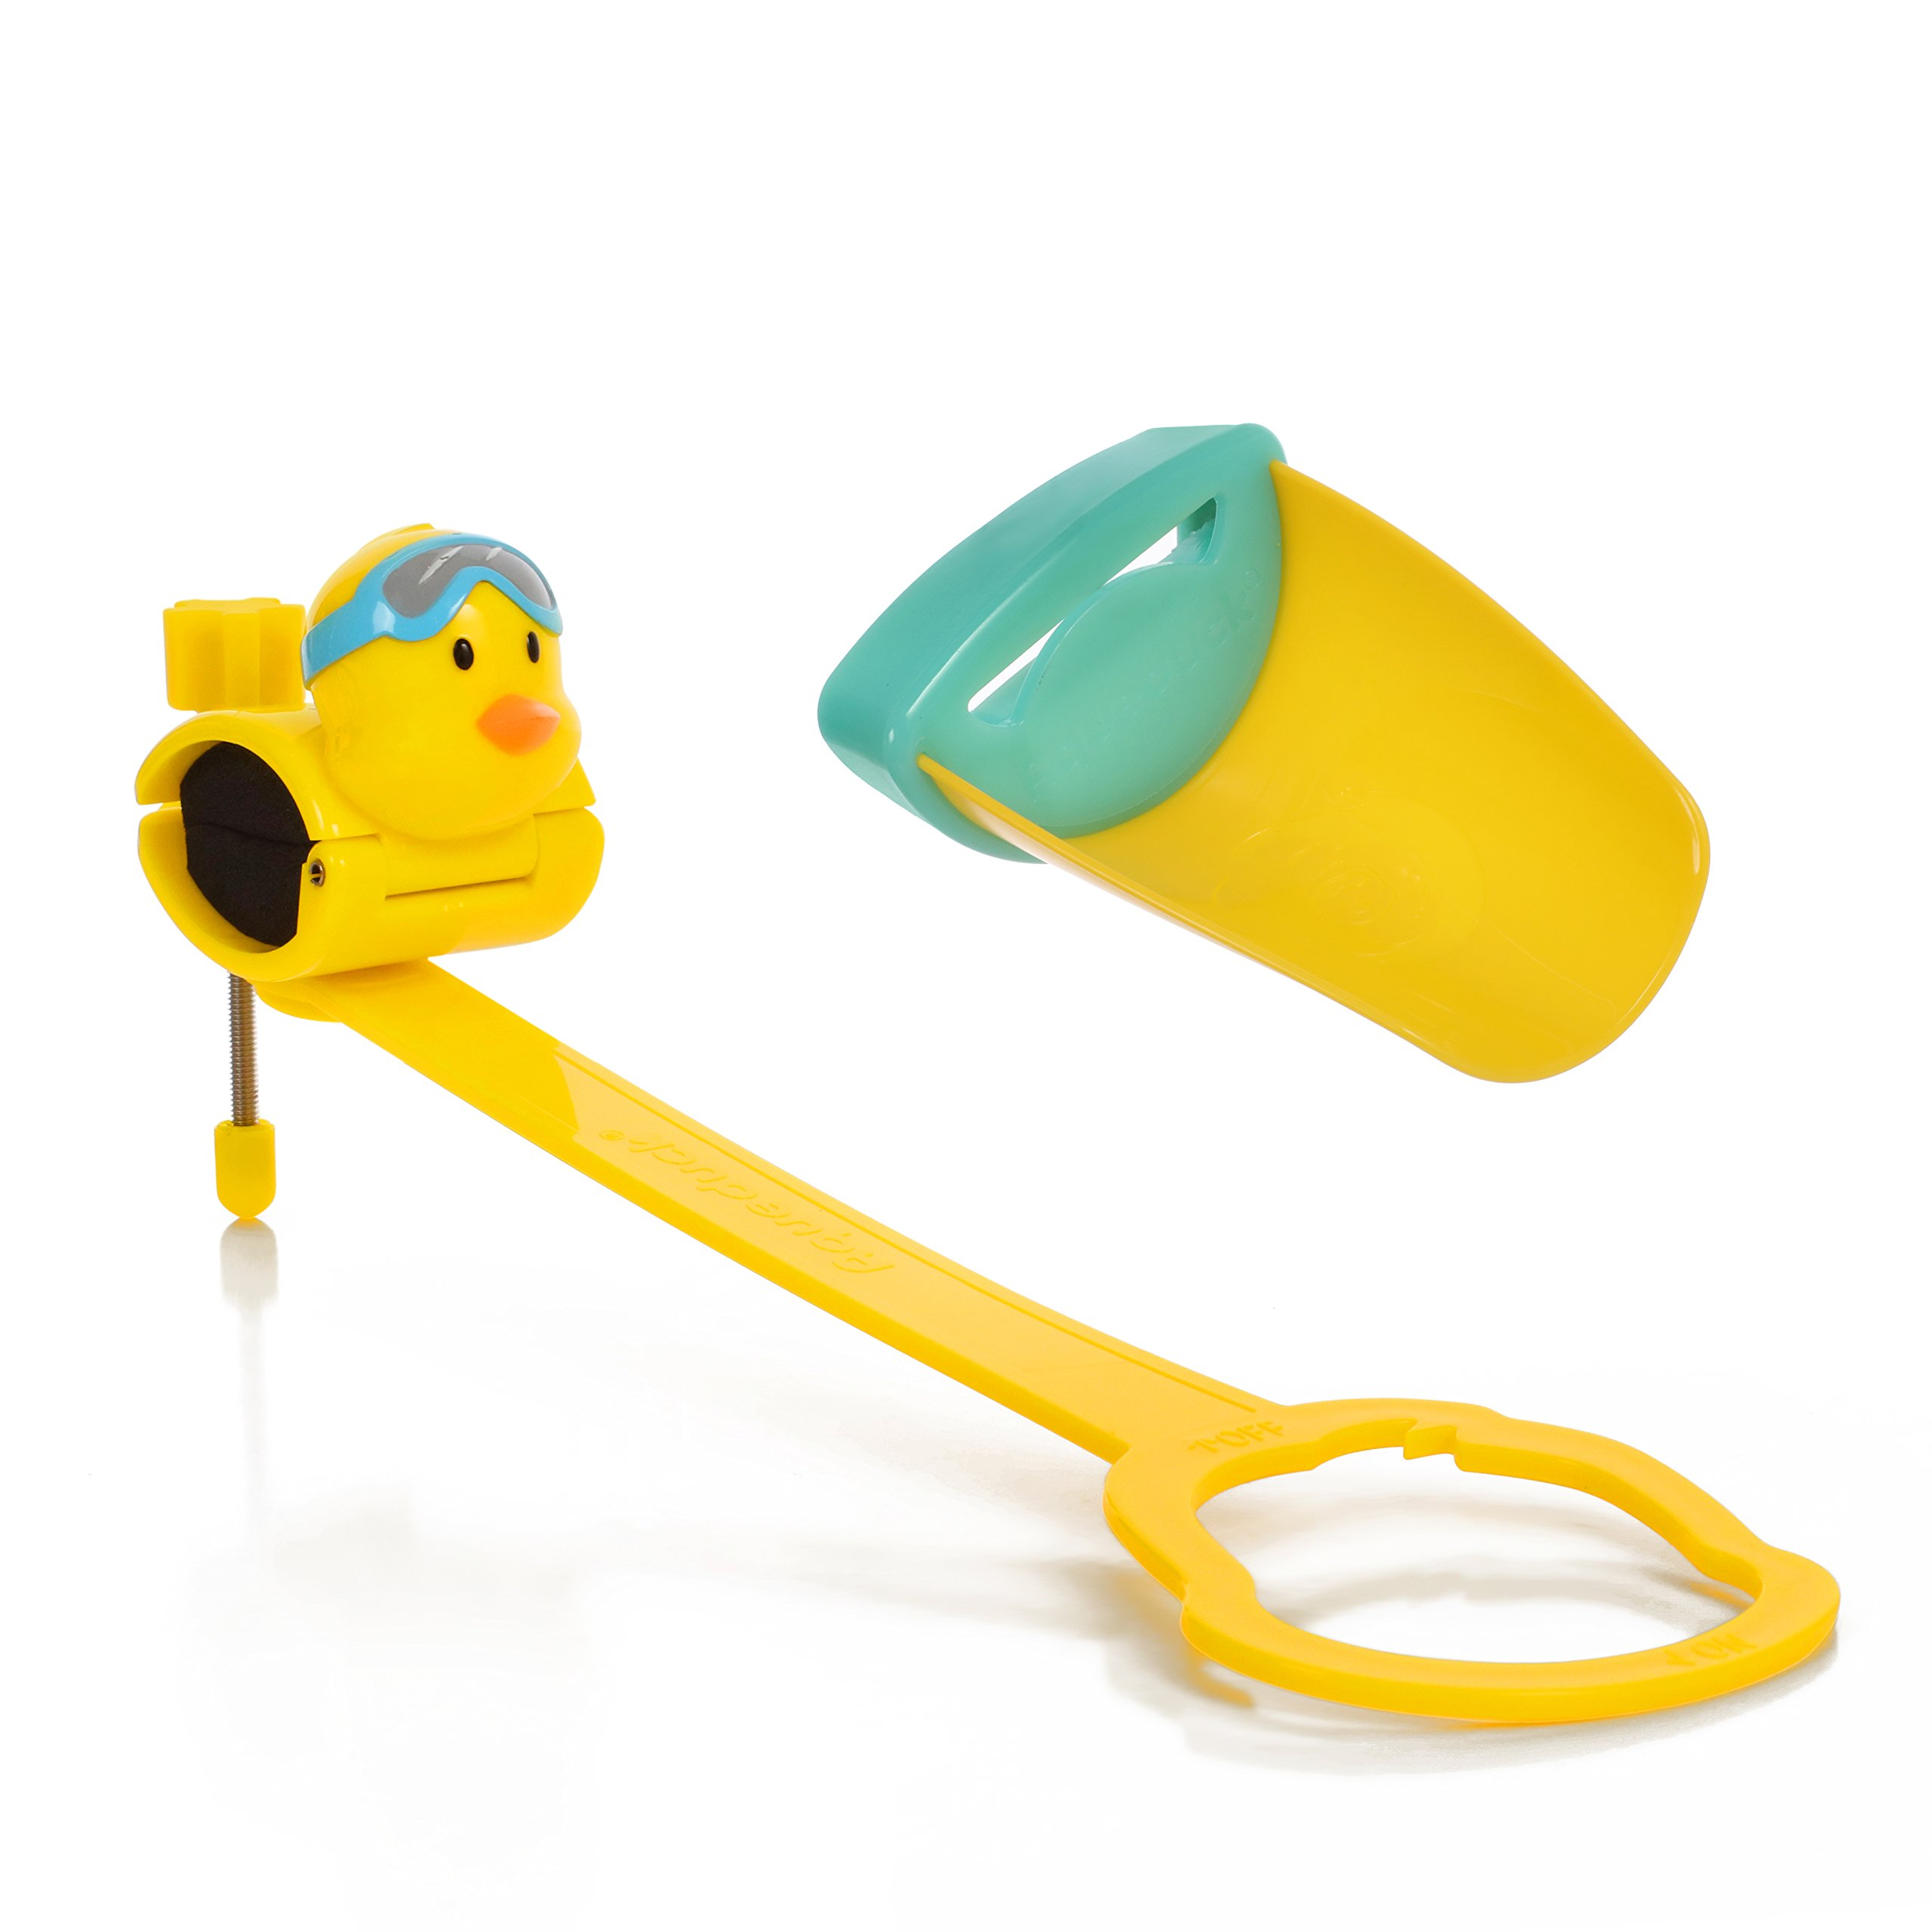 Aqueduck Faucet Handle Extender Set. Connects to Sink Handle and Faucet to Make Washing Hands Fun and Teaches Your Baby or Child Good Habits and Promote Independence to Them. by Aqueduck